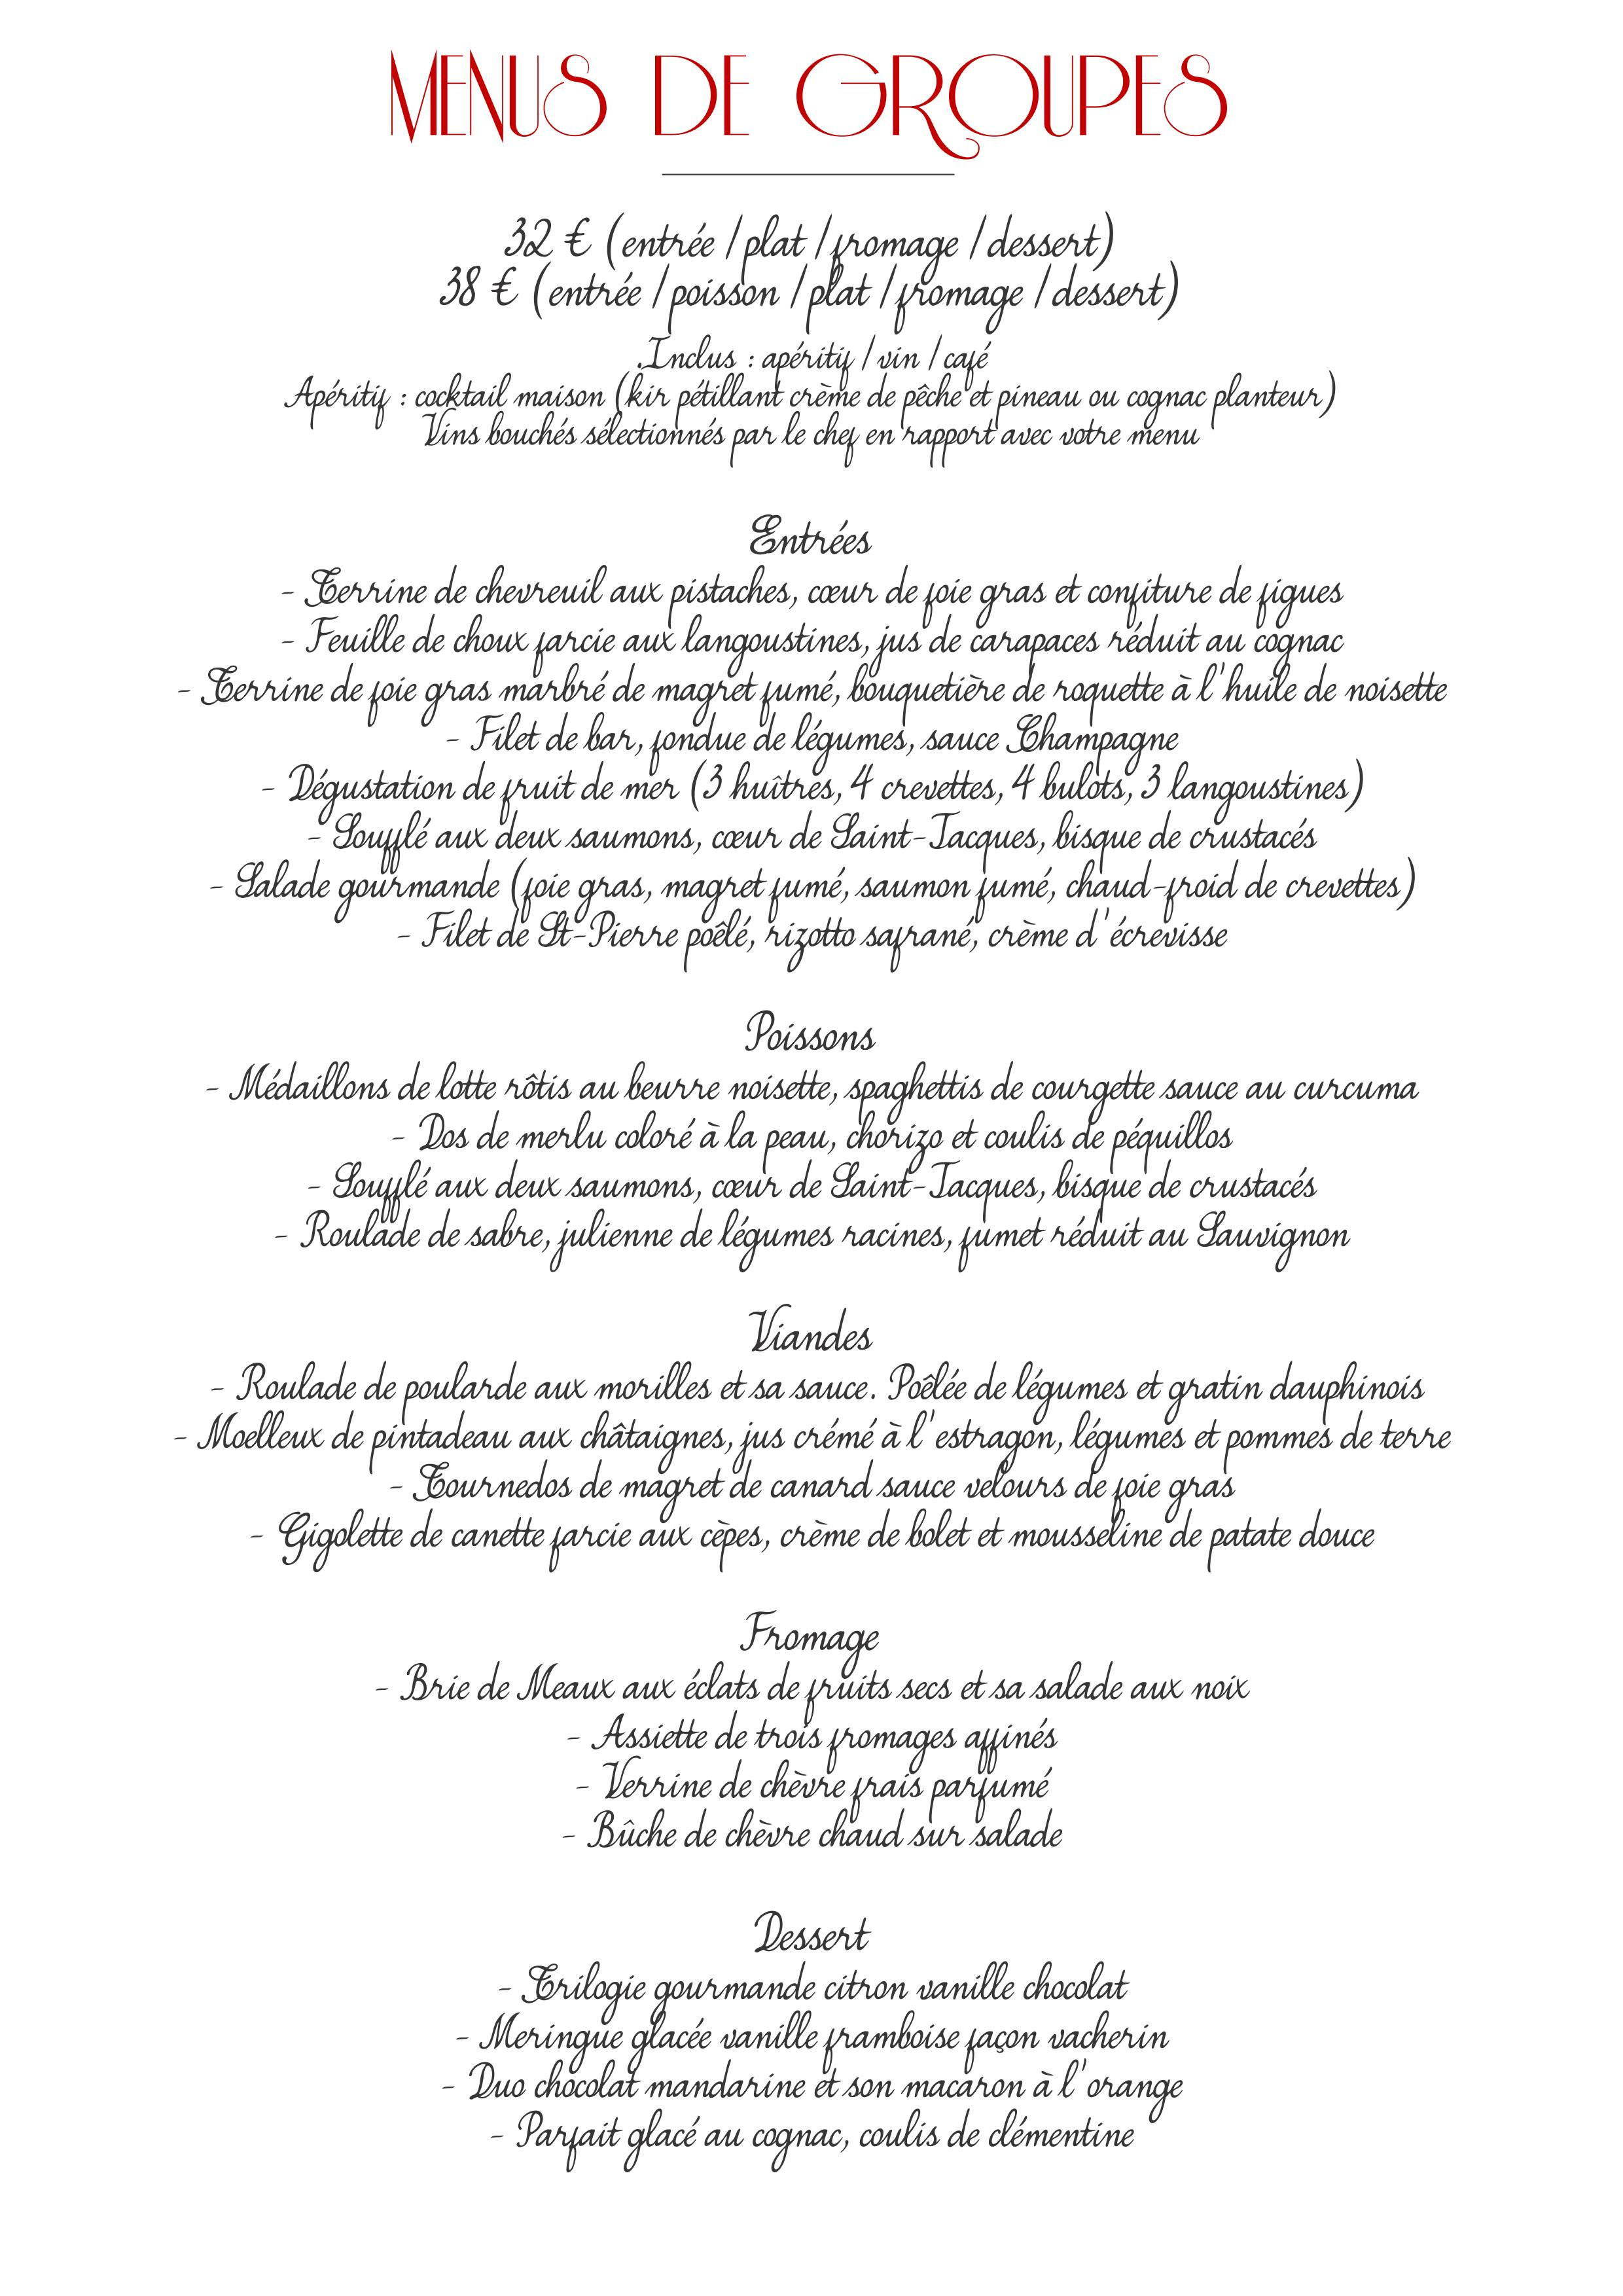 menu groupe 2019_05